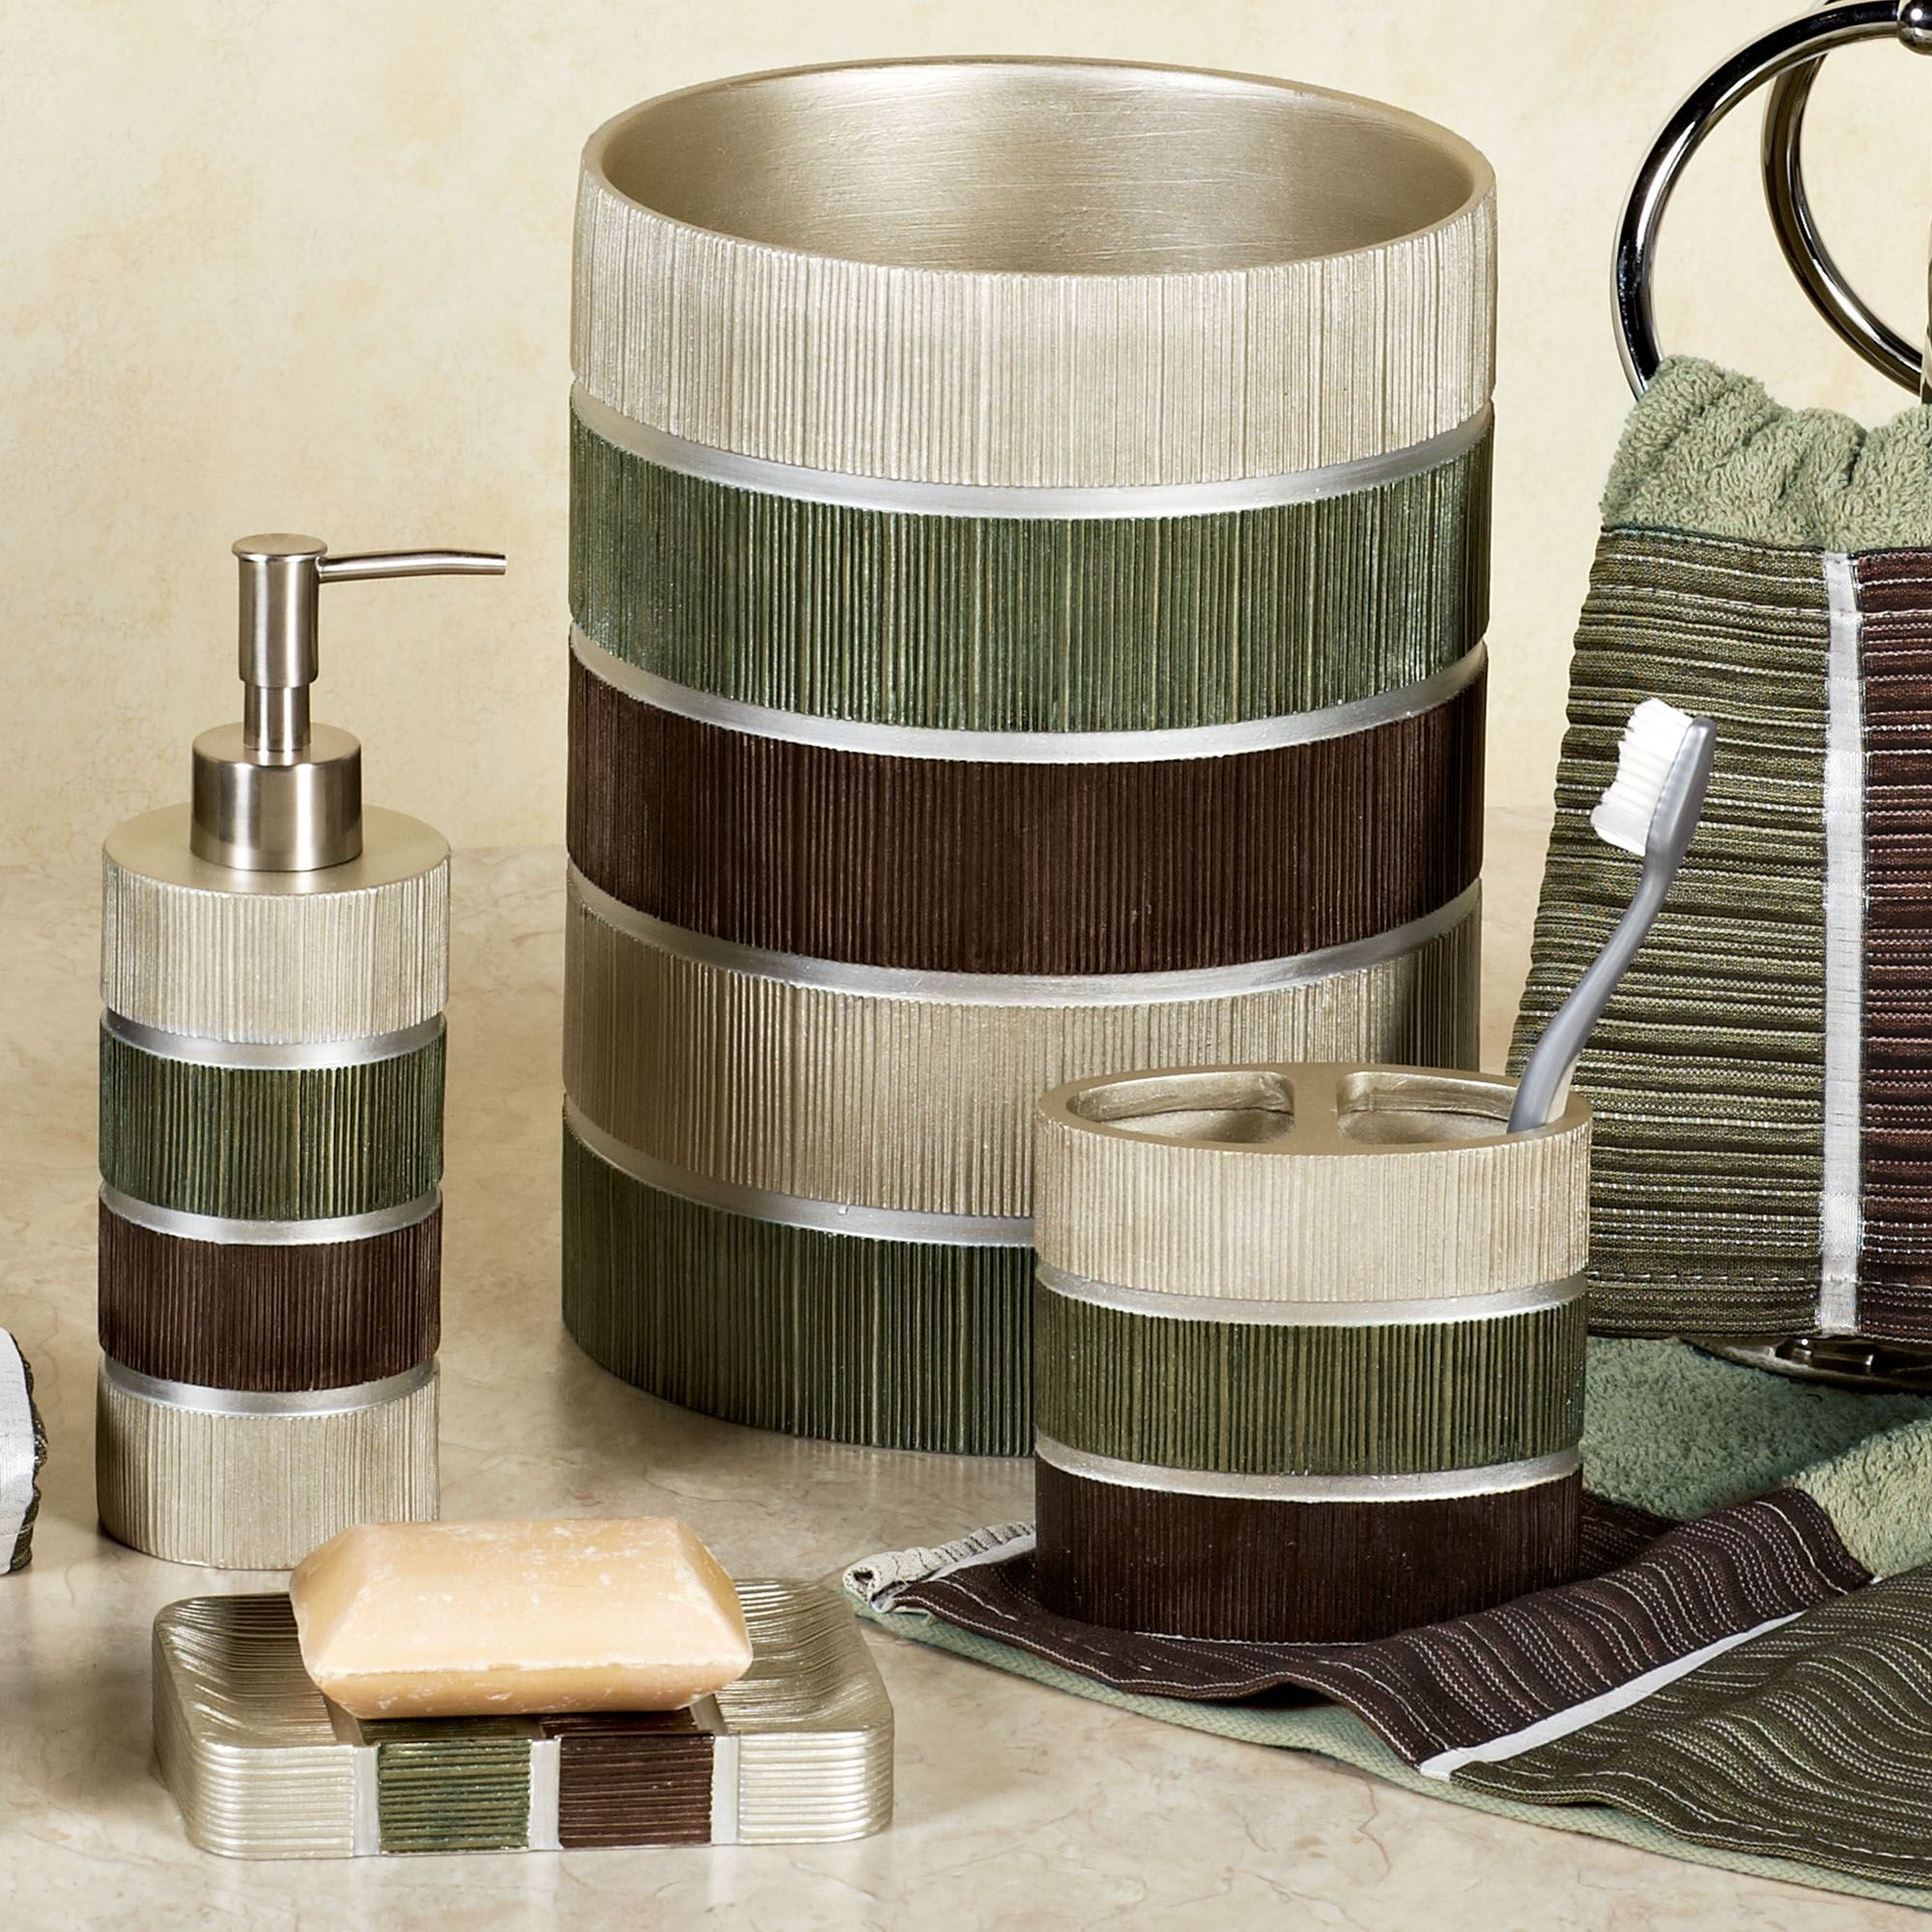 Modern line sage striped bath accessories for Bathroom decor green and brown